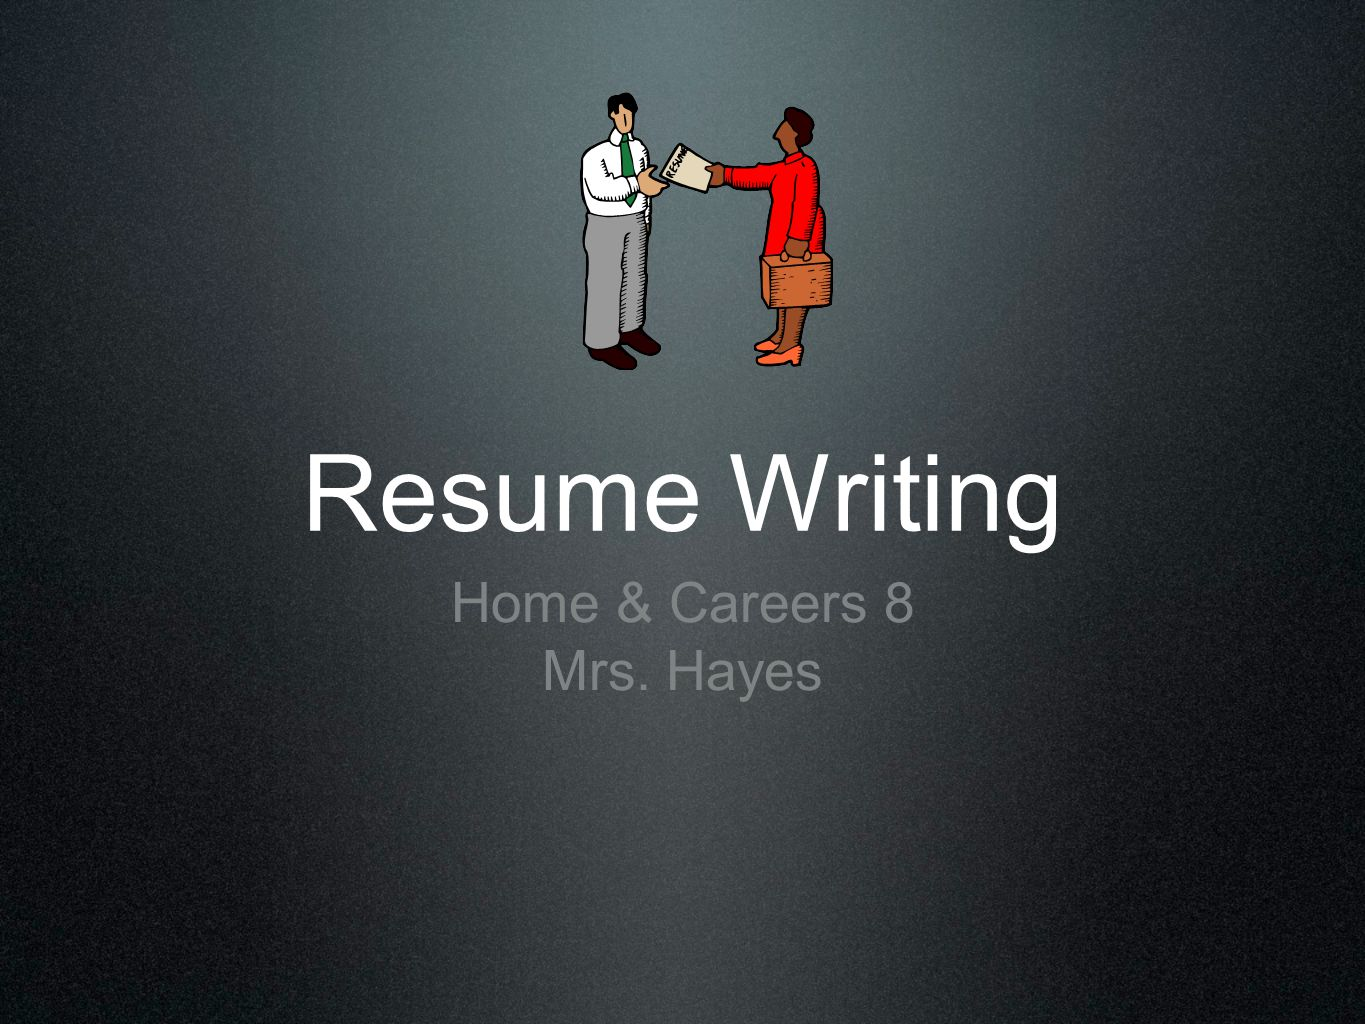 Resume Writing Home & Careers 8 Mrs. Hayes